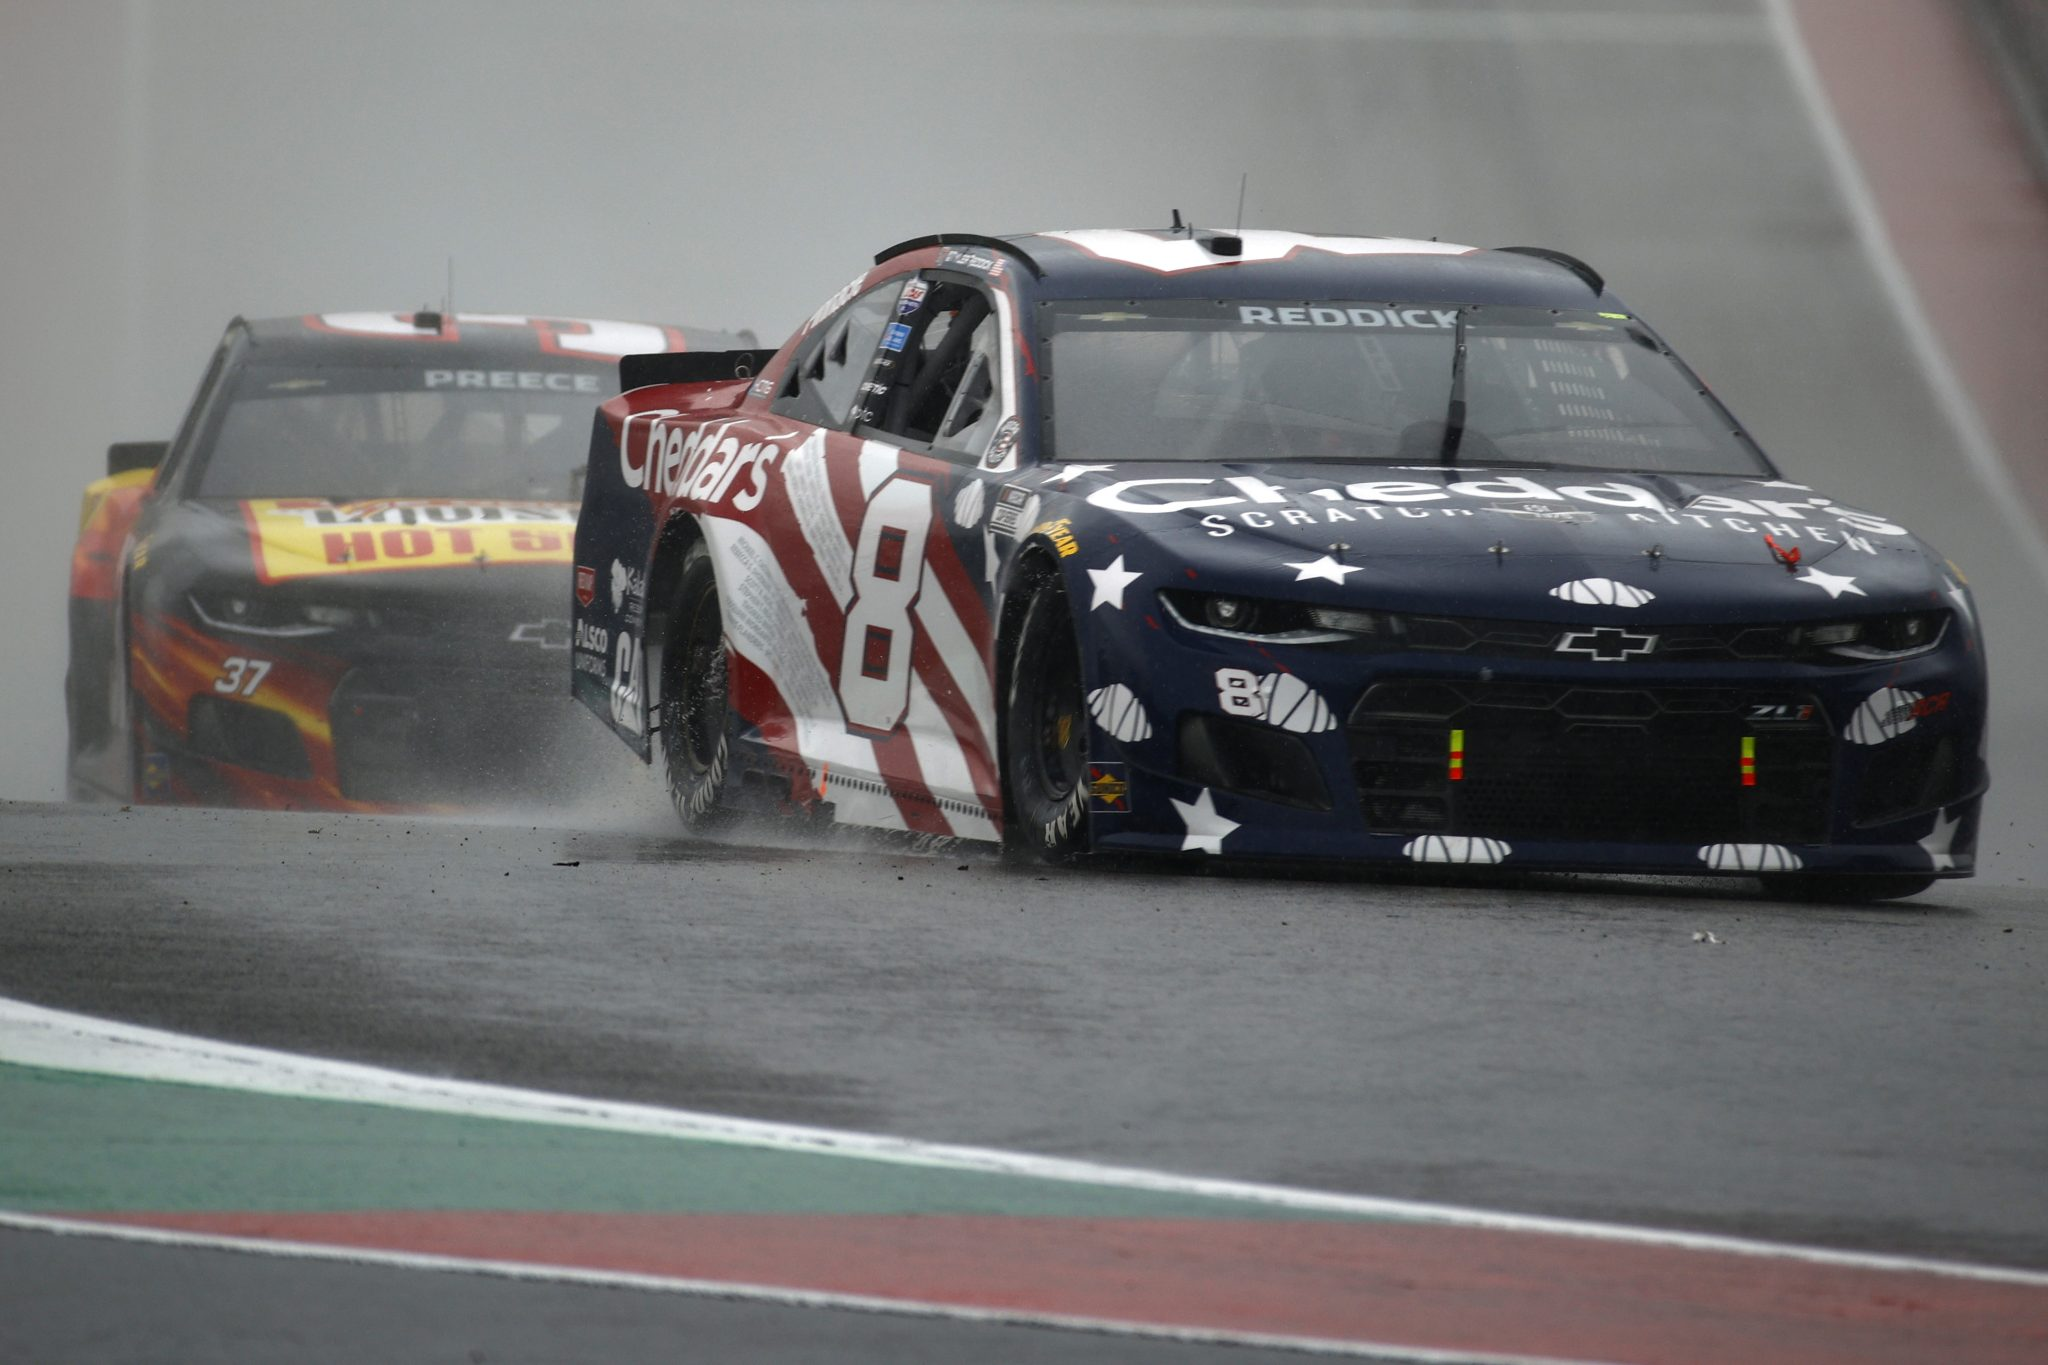 AUSTIN, TEXAS - MAY 23: Tyler Reddick, driver of the #8 Cheddar's Chevrolet, drives during the NASCAR Cup Series EchoPark Texas Grand Prix at Circuit of The Americas on May 23, 2021 in Austin, Texas. (Photo by Jared C. Tilton/Getty Images)   Getty Images